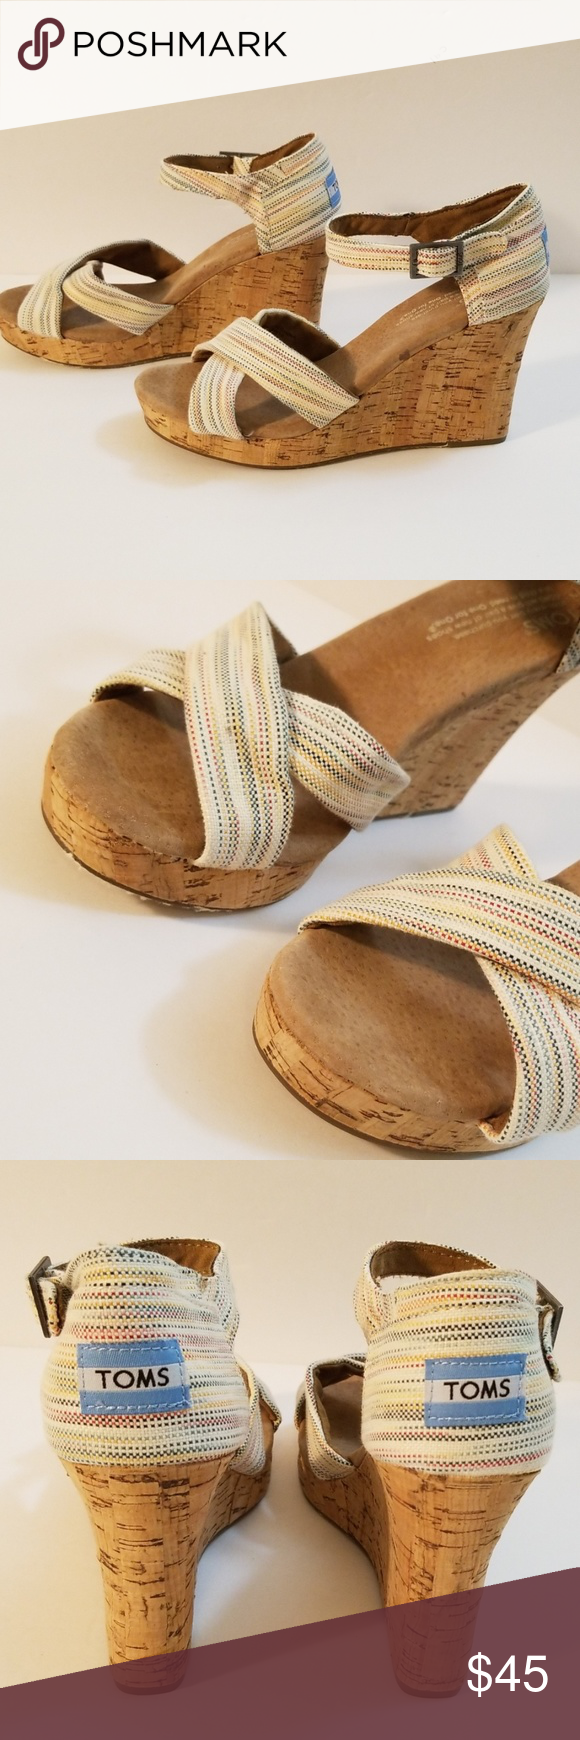 Tom's Wedge Sandals Size 7 Tom's Wedge sandals Size 7 Heels 7 Platform 1 Multicolored  Brand New no tags  See the pictures Toms Shoes Wedges #tomwedges Tom's Wedge Sandals Size 7 Tom's Wedge sandals Size 7 Heels 7 Platform 1 Multicolored  Brand New no tags  See the pictures Toms Shoes Wedges #tomwedges